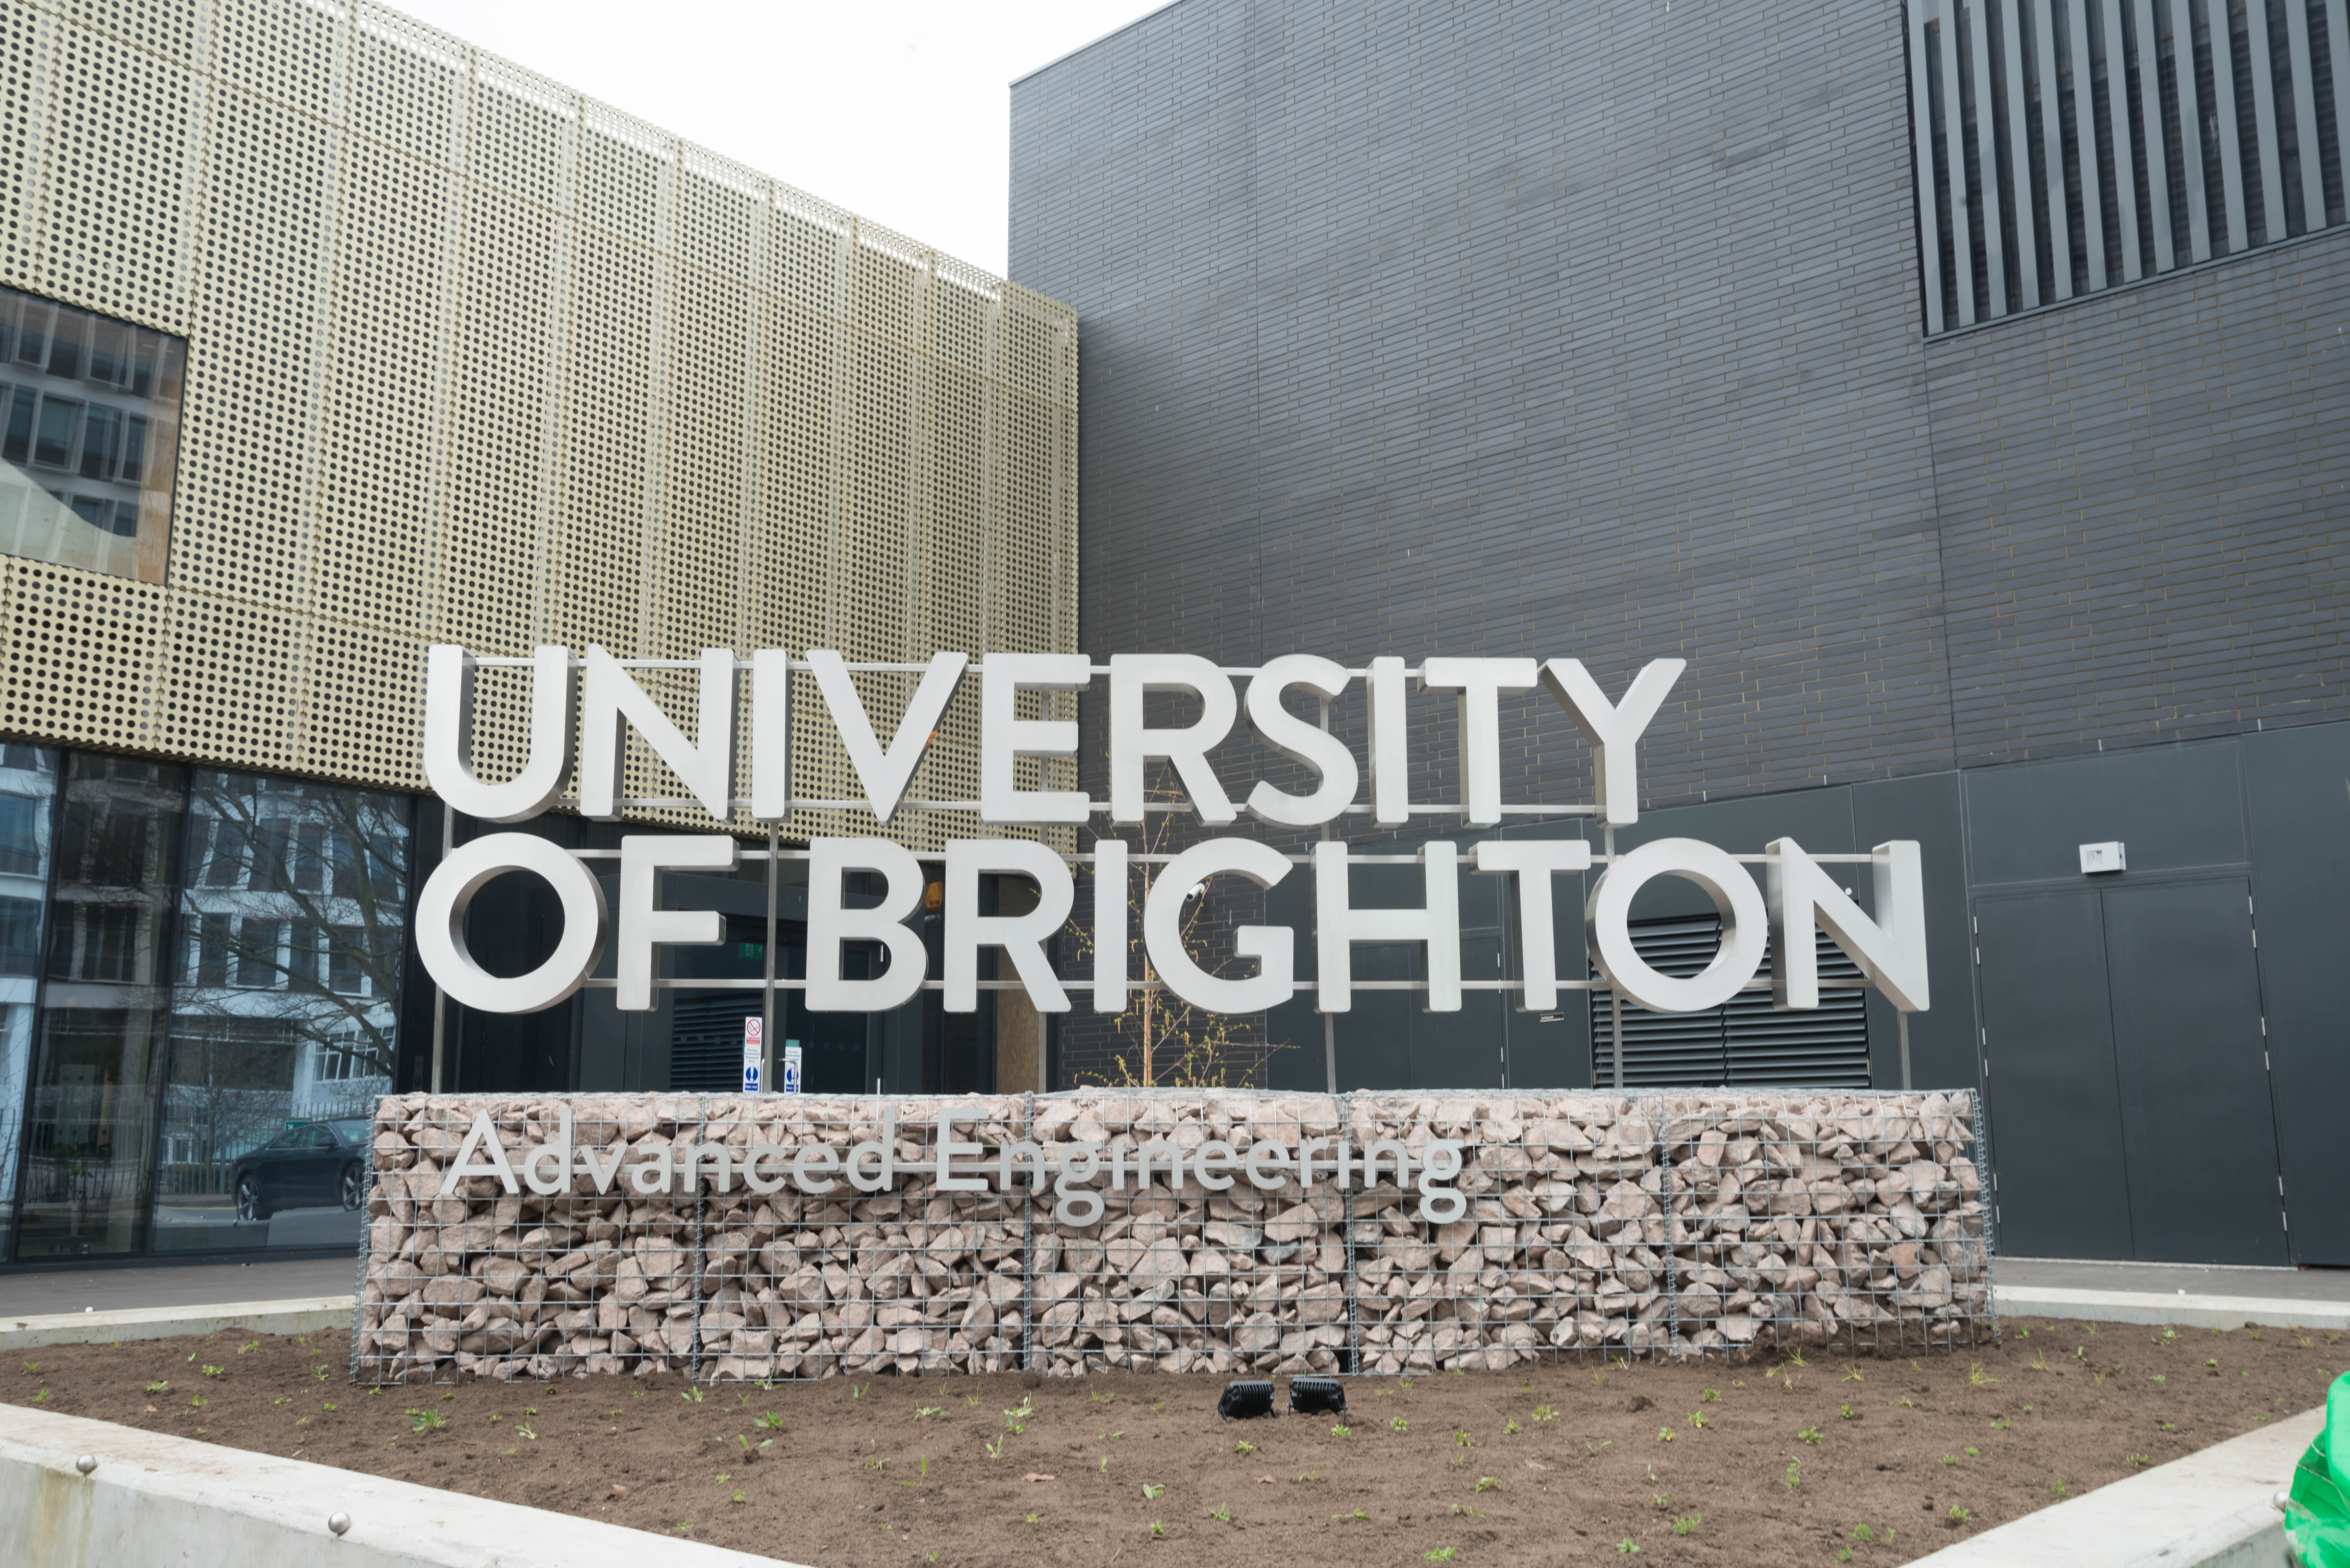 Advanced Engineering Building UoB sign